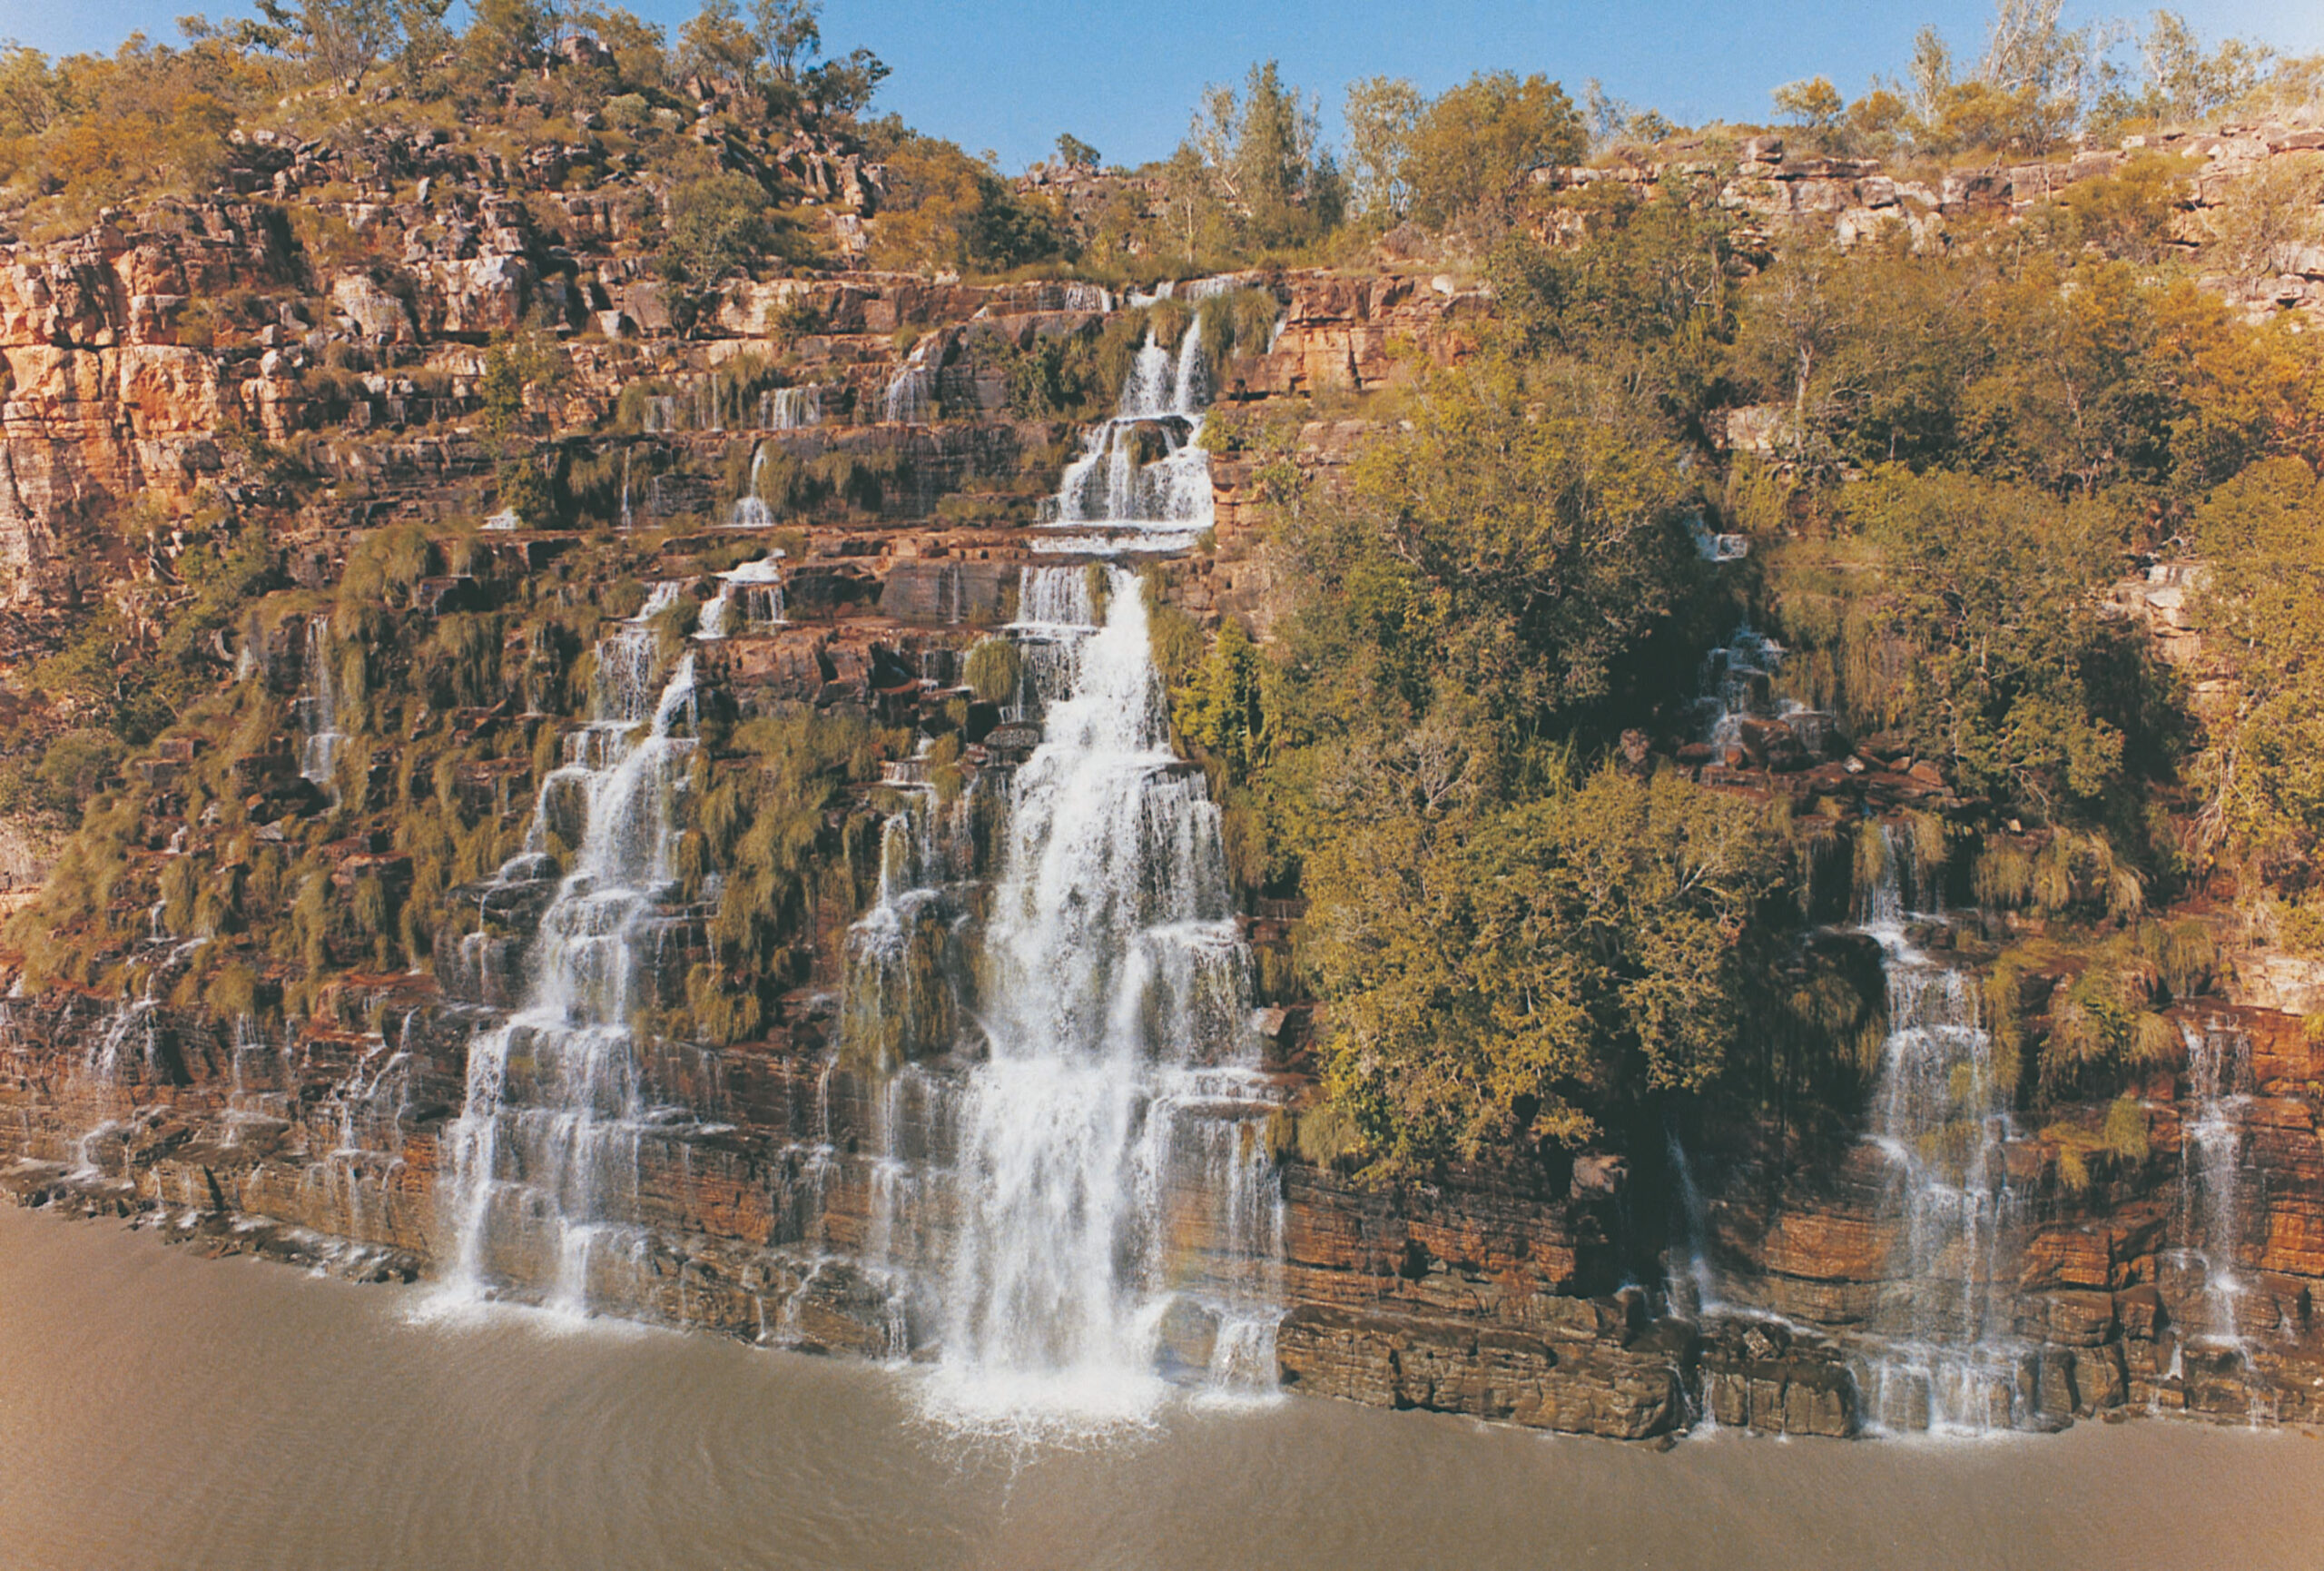 YOTSPACE superyacht voyages - Kimberley voyages - King Cascade waterfall - Prince Regent River